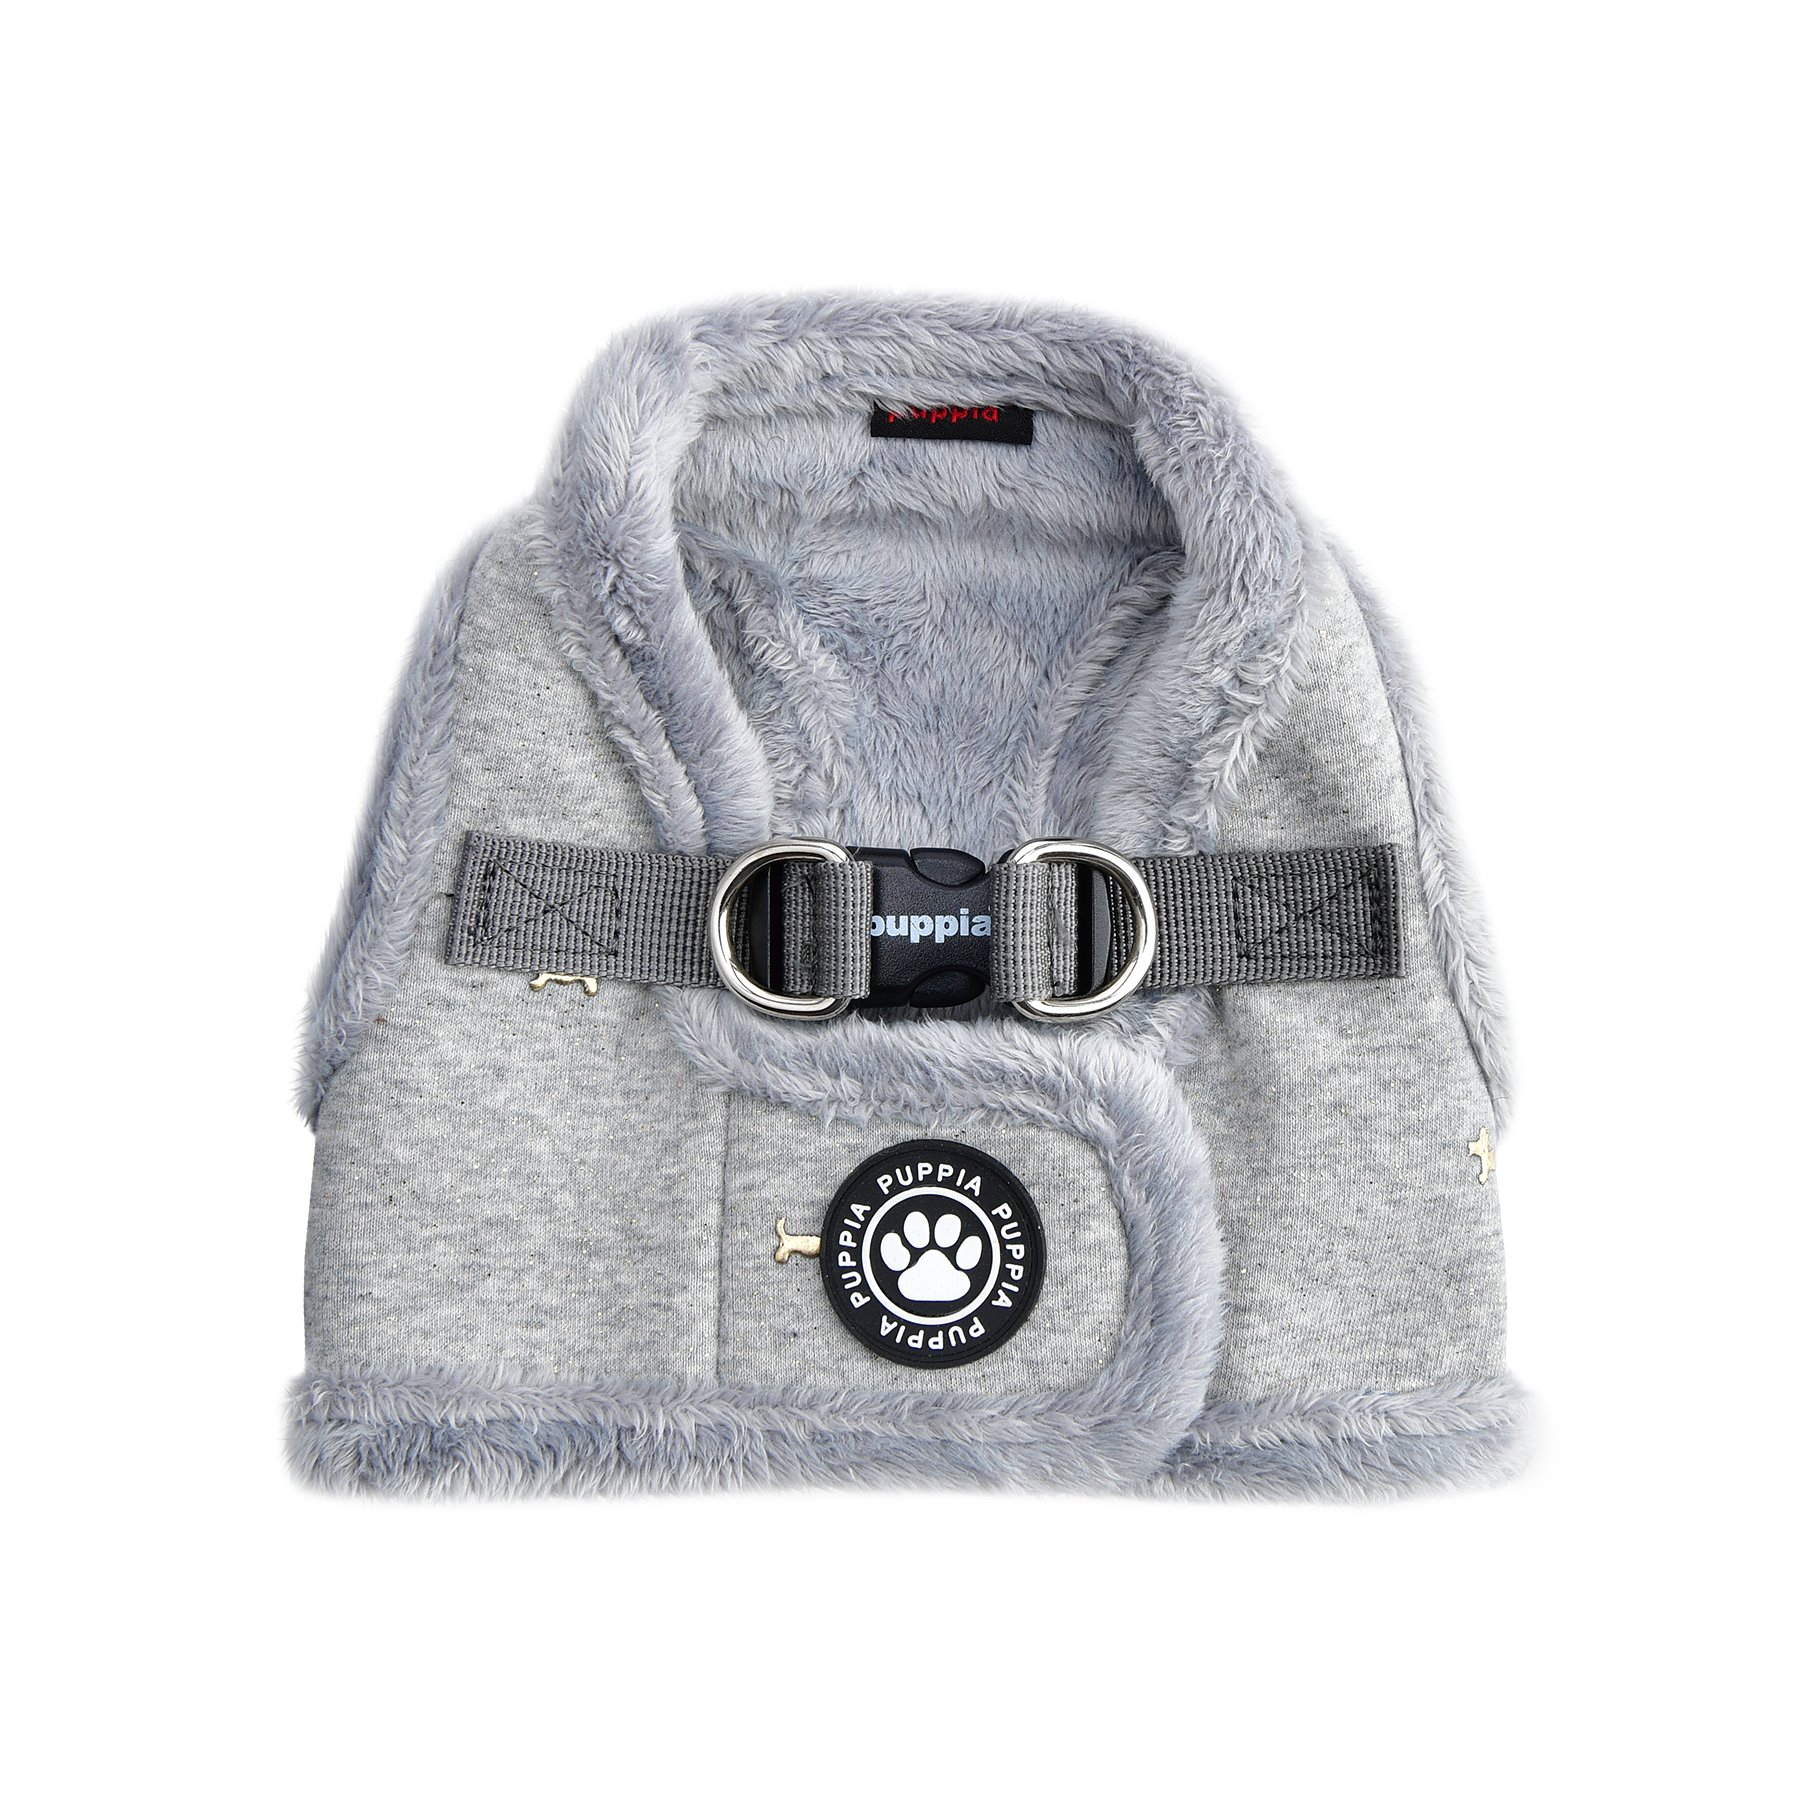 Puppia Gia Harness B, Medium, Melange Grey